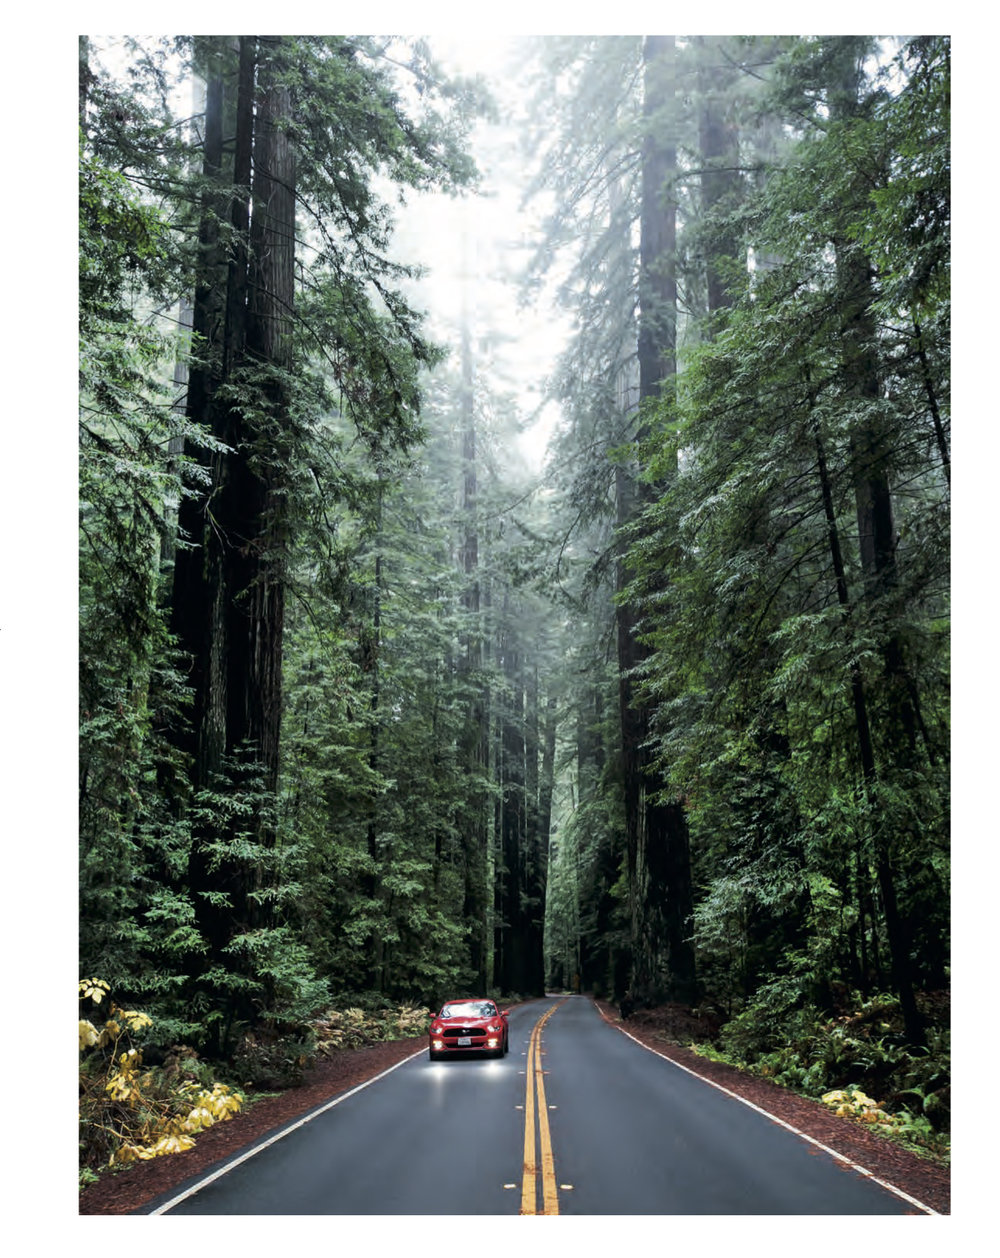 Encounter With Coastal Giants      Conde Nast Traveler China   For the centennial of the US National Parks Service, I went deep into the redwoods—Redwood National Park—to discover ancient forests and the history of one of America's best ideas ever.